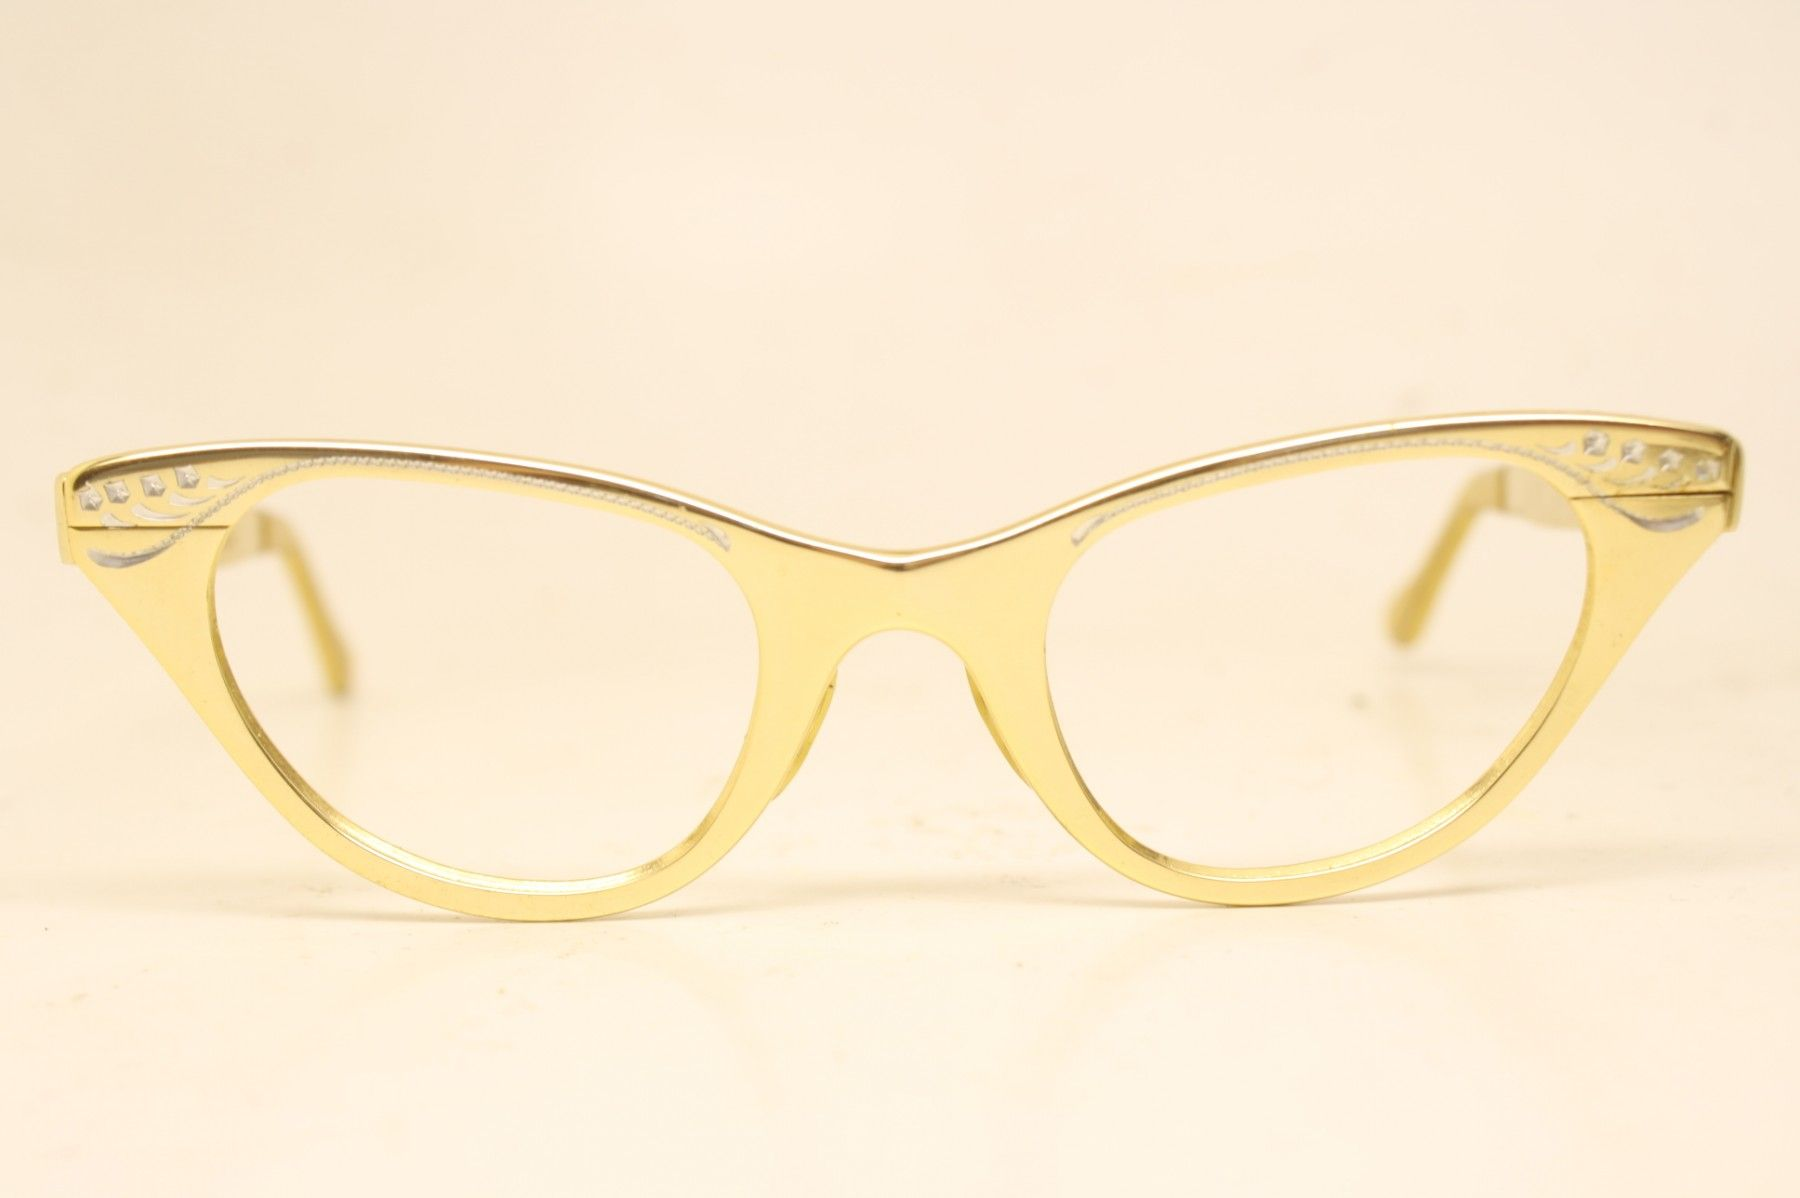 44690695908cc Beautiful Unused pair of authentic vintage woman s cat eye glasses. In  great condition